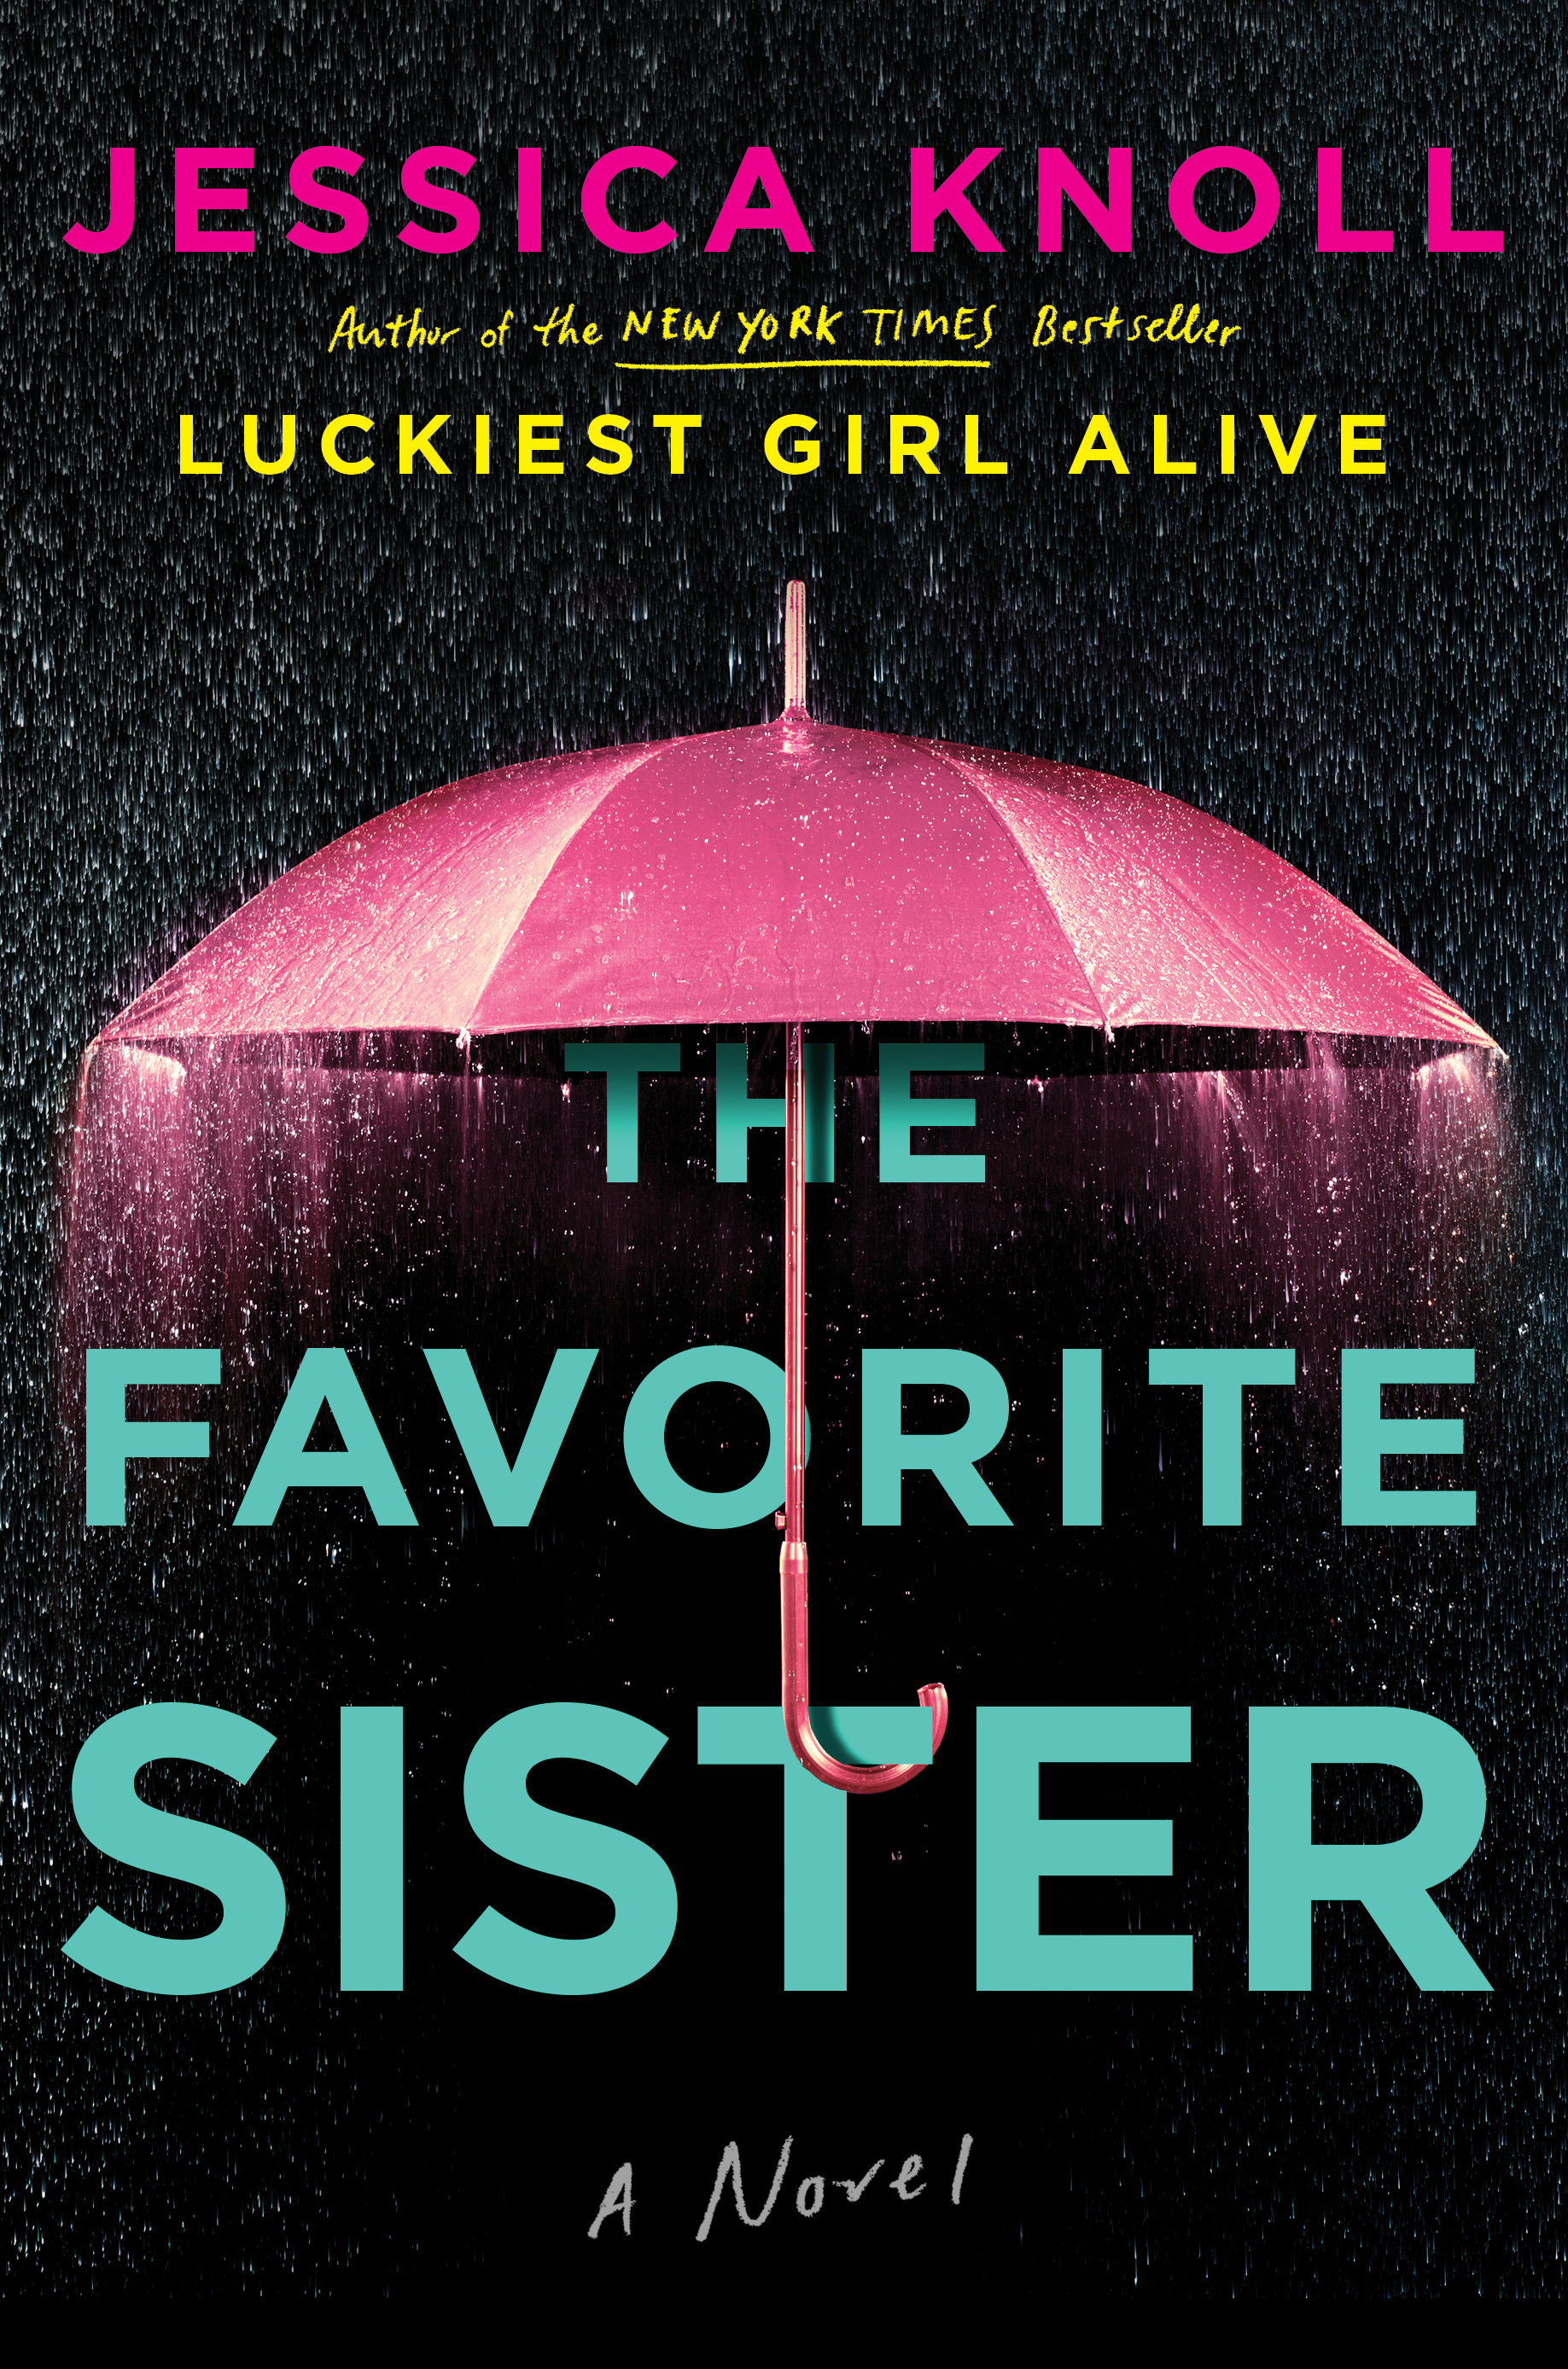 The Favorite Sister by Jessica Knoll.